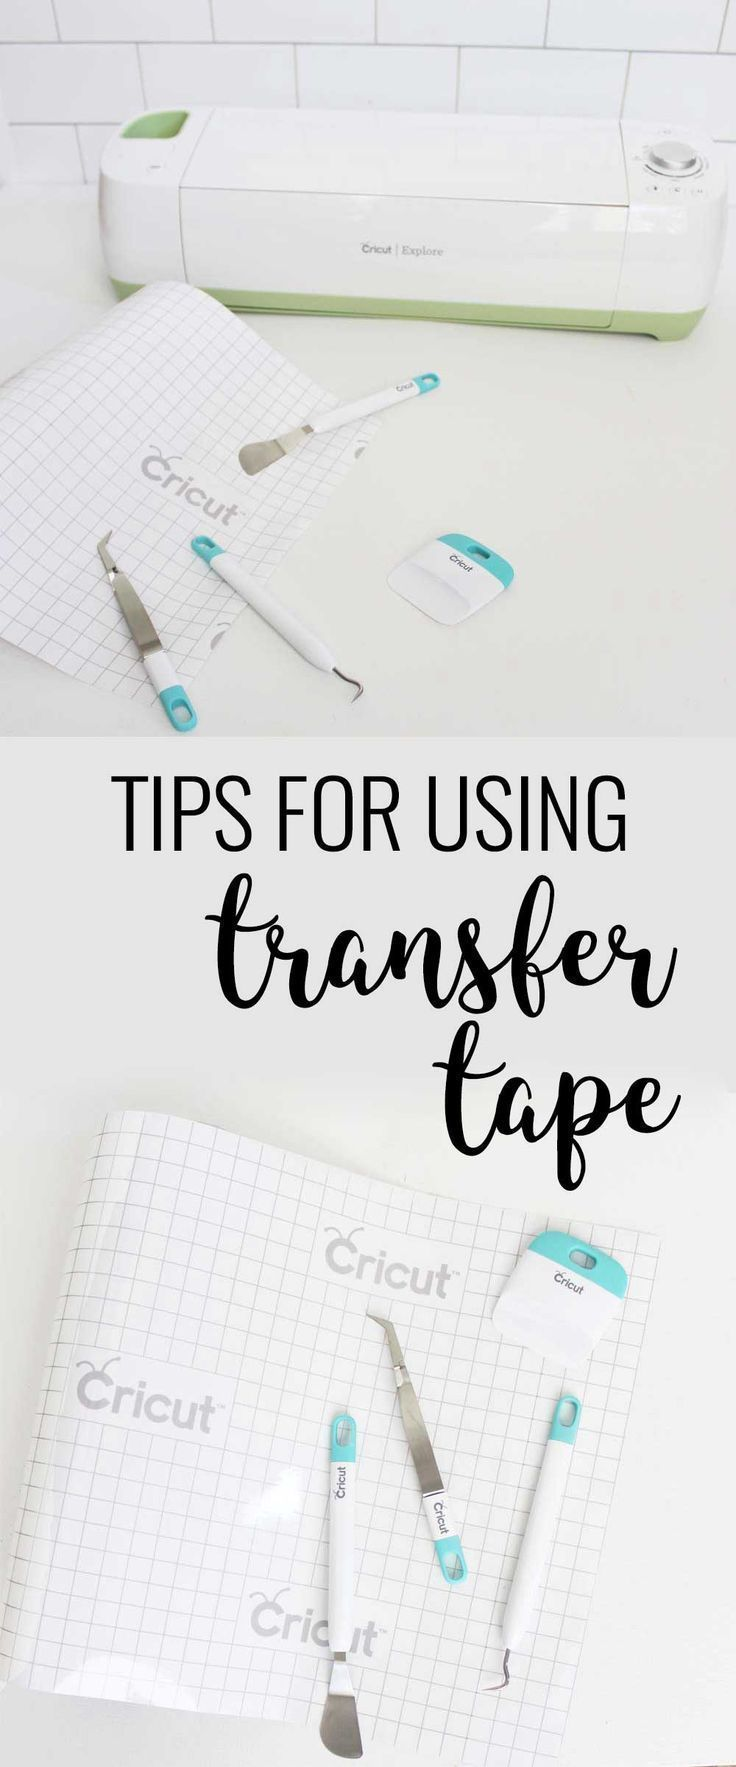 How to Use Cricut Transfer Tape